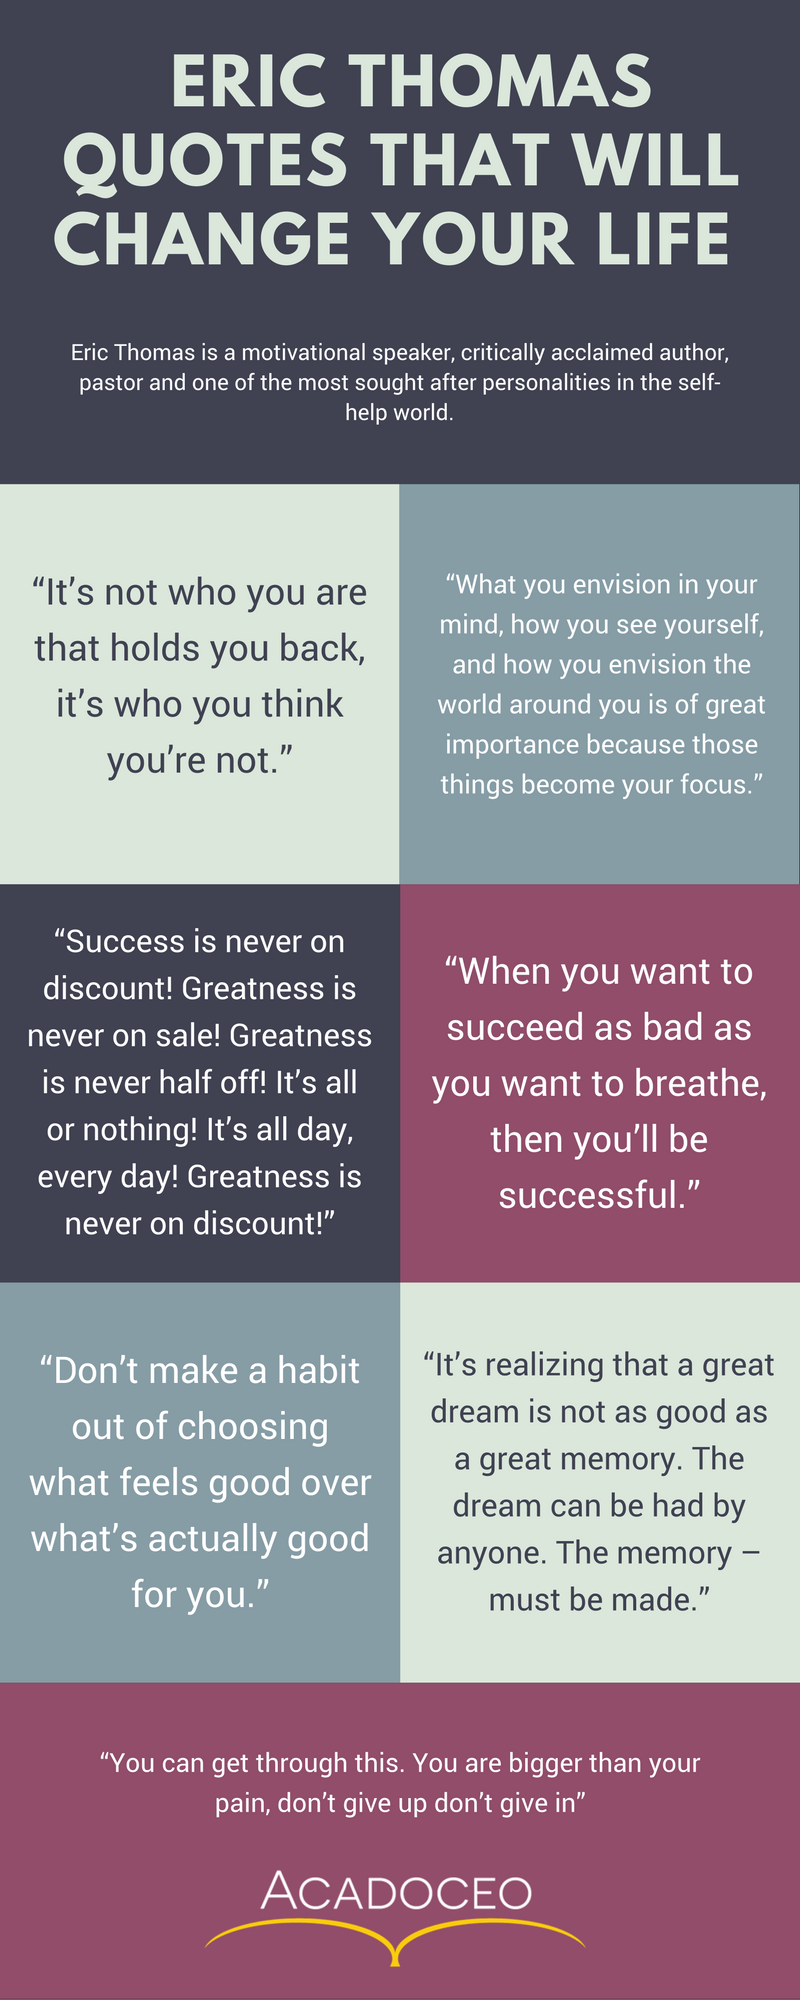 ERIC THOMAS QUOTES THAT WILL CHANGE YOUR LIFE quotes